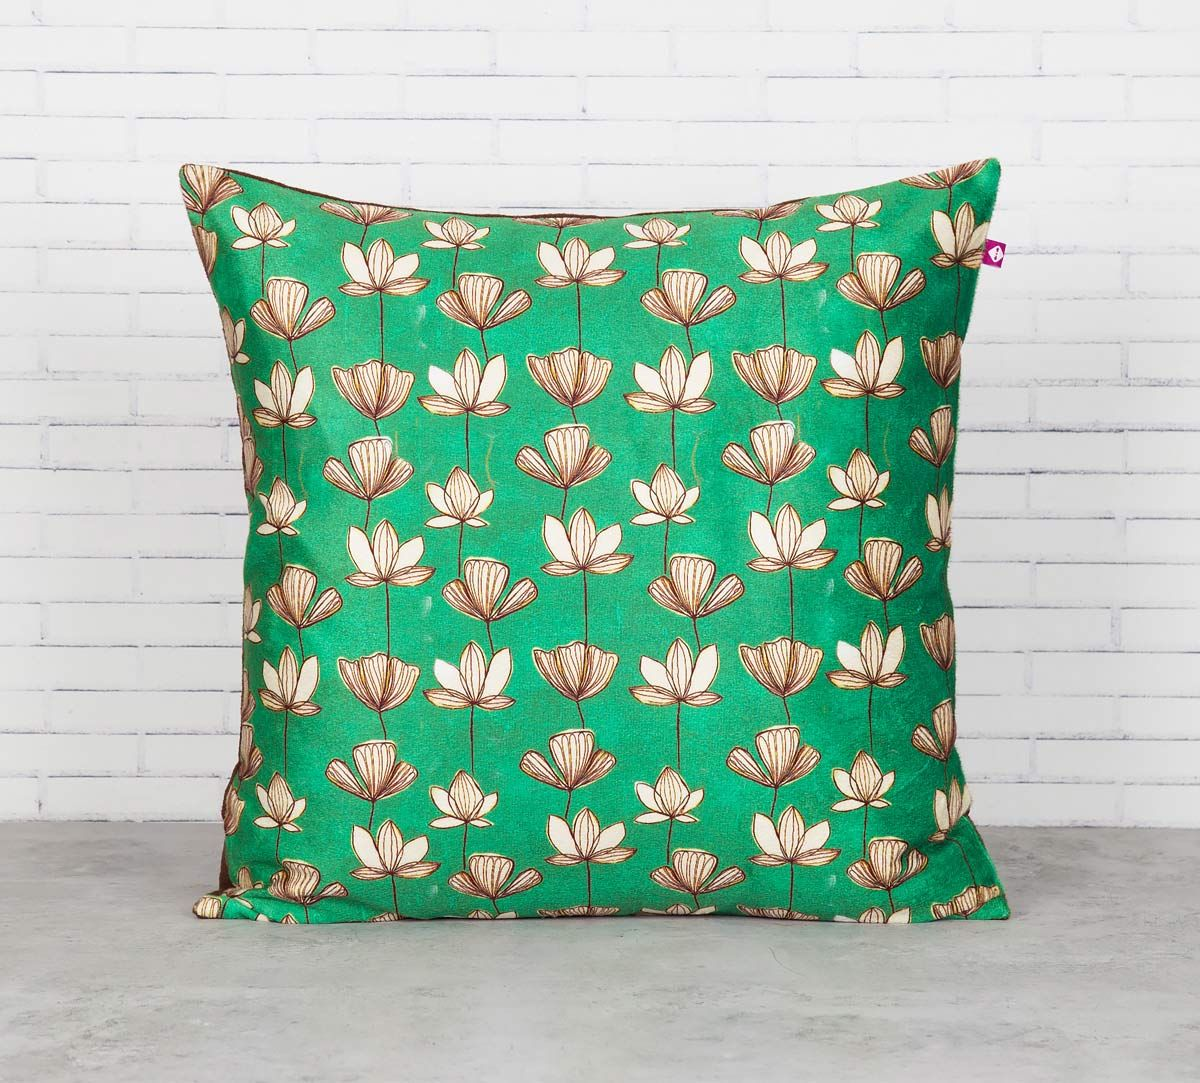 India Circus Lotus Pond Blended Velvet Cushion Cover